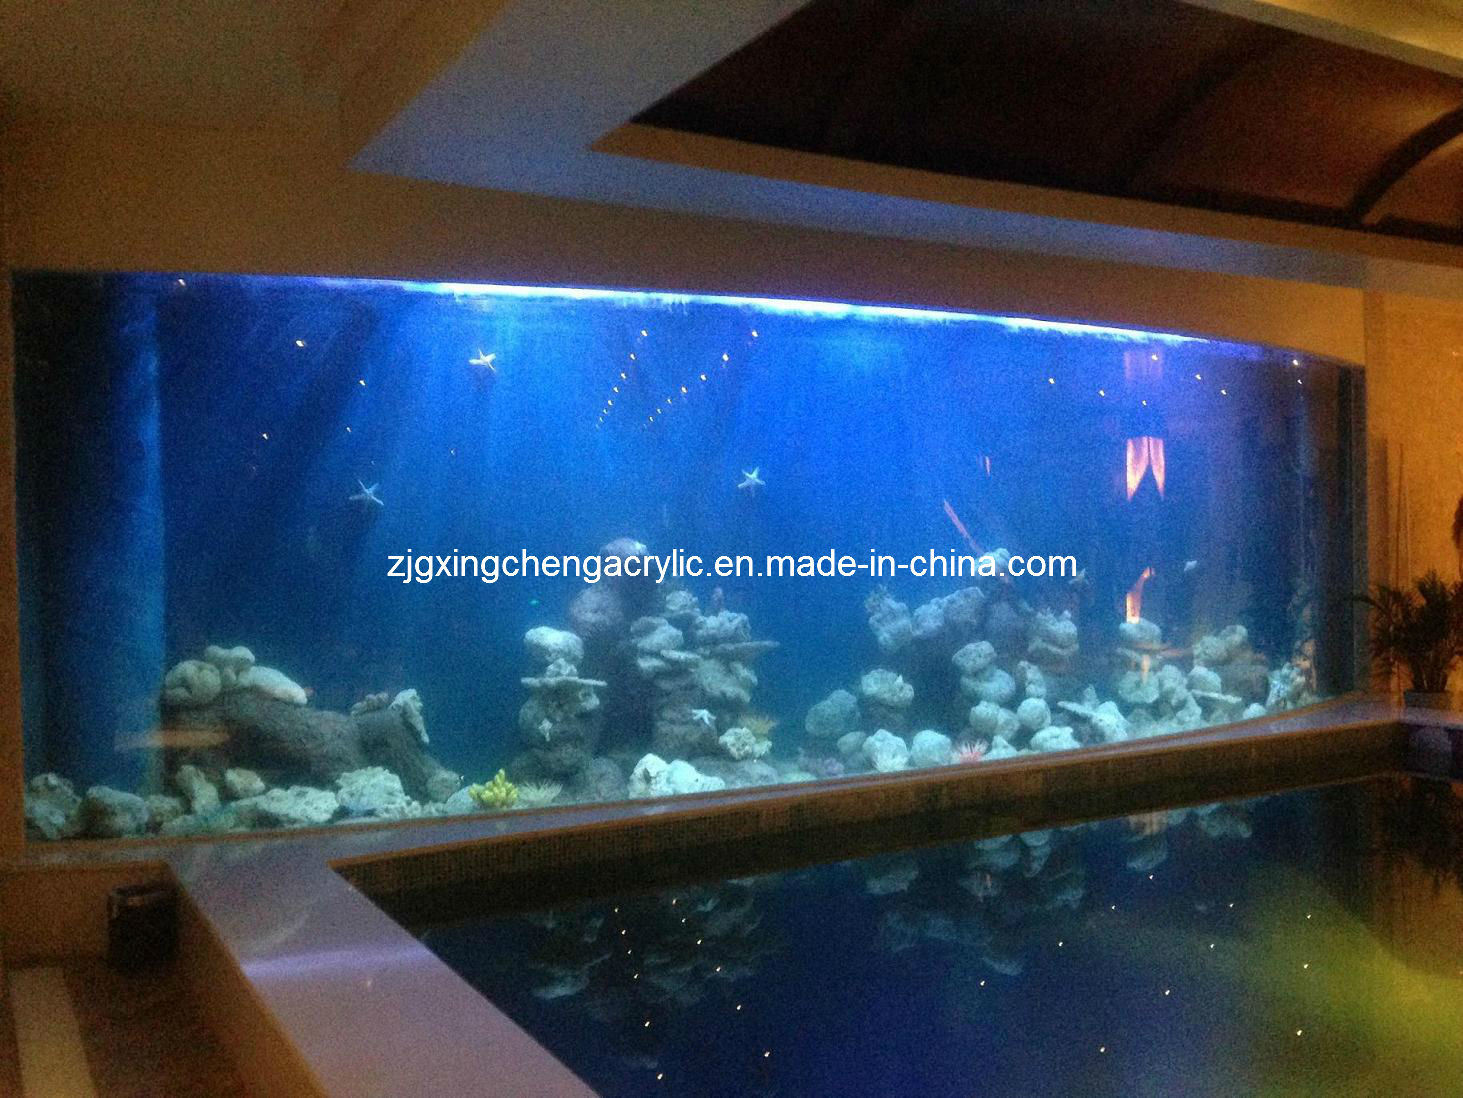 Acrylglas Aquarium China Transparent Acrylic Aquarium Plexiglass Fish Tank